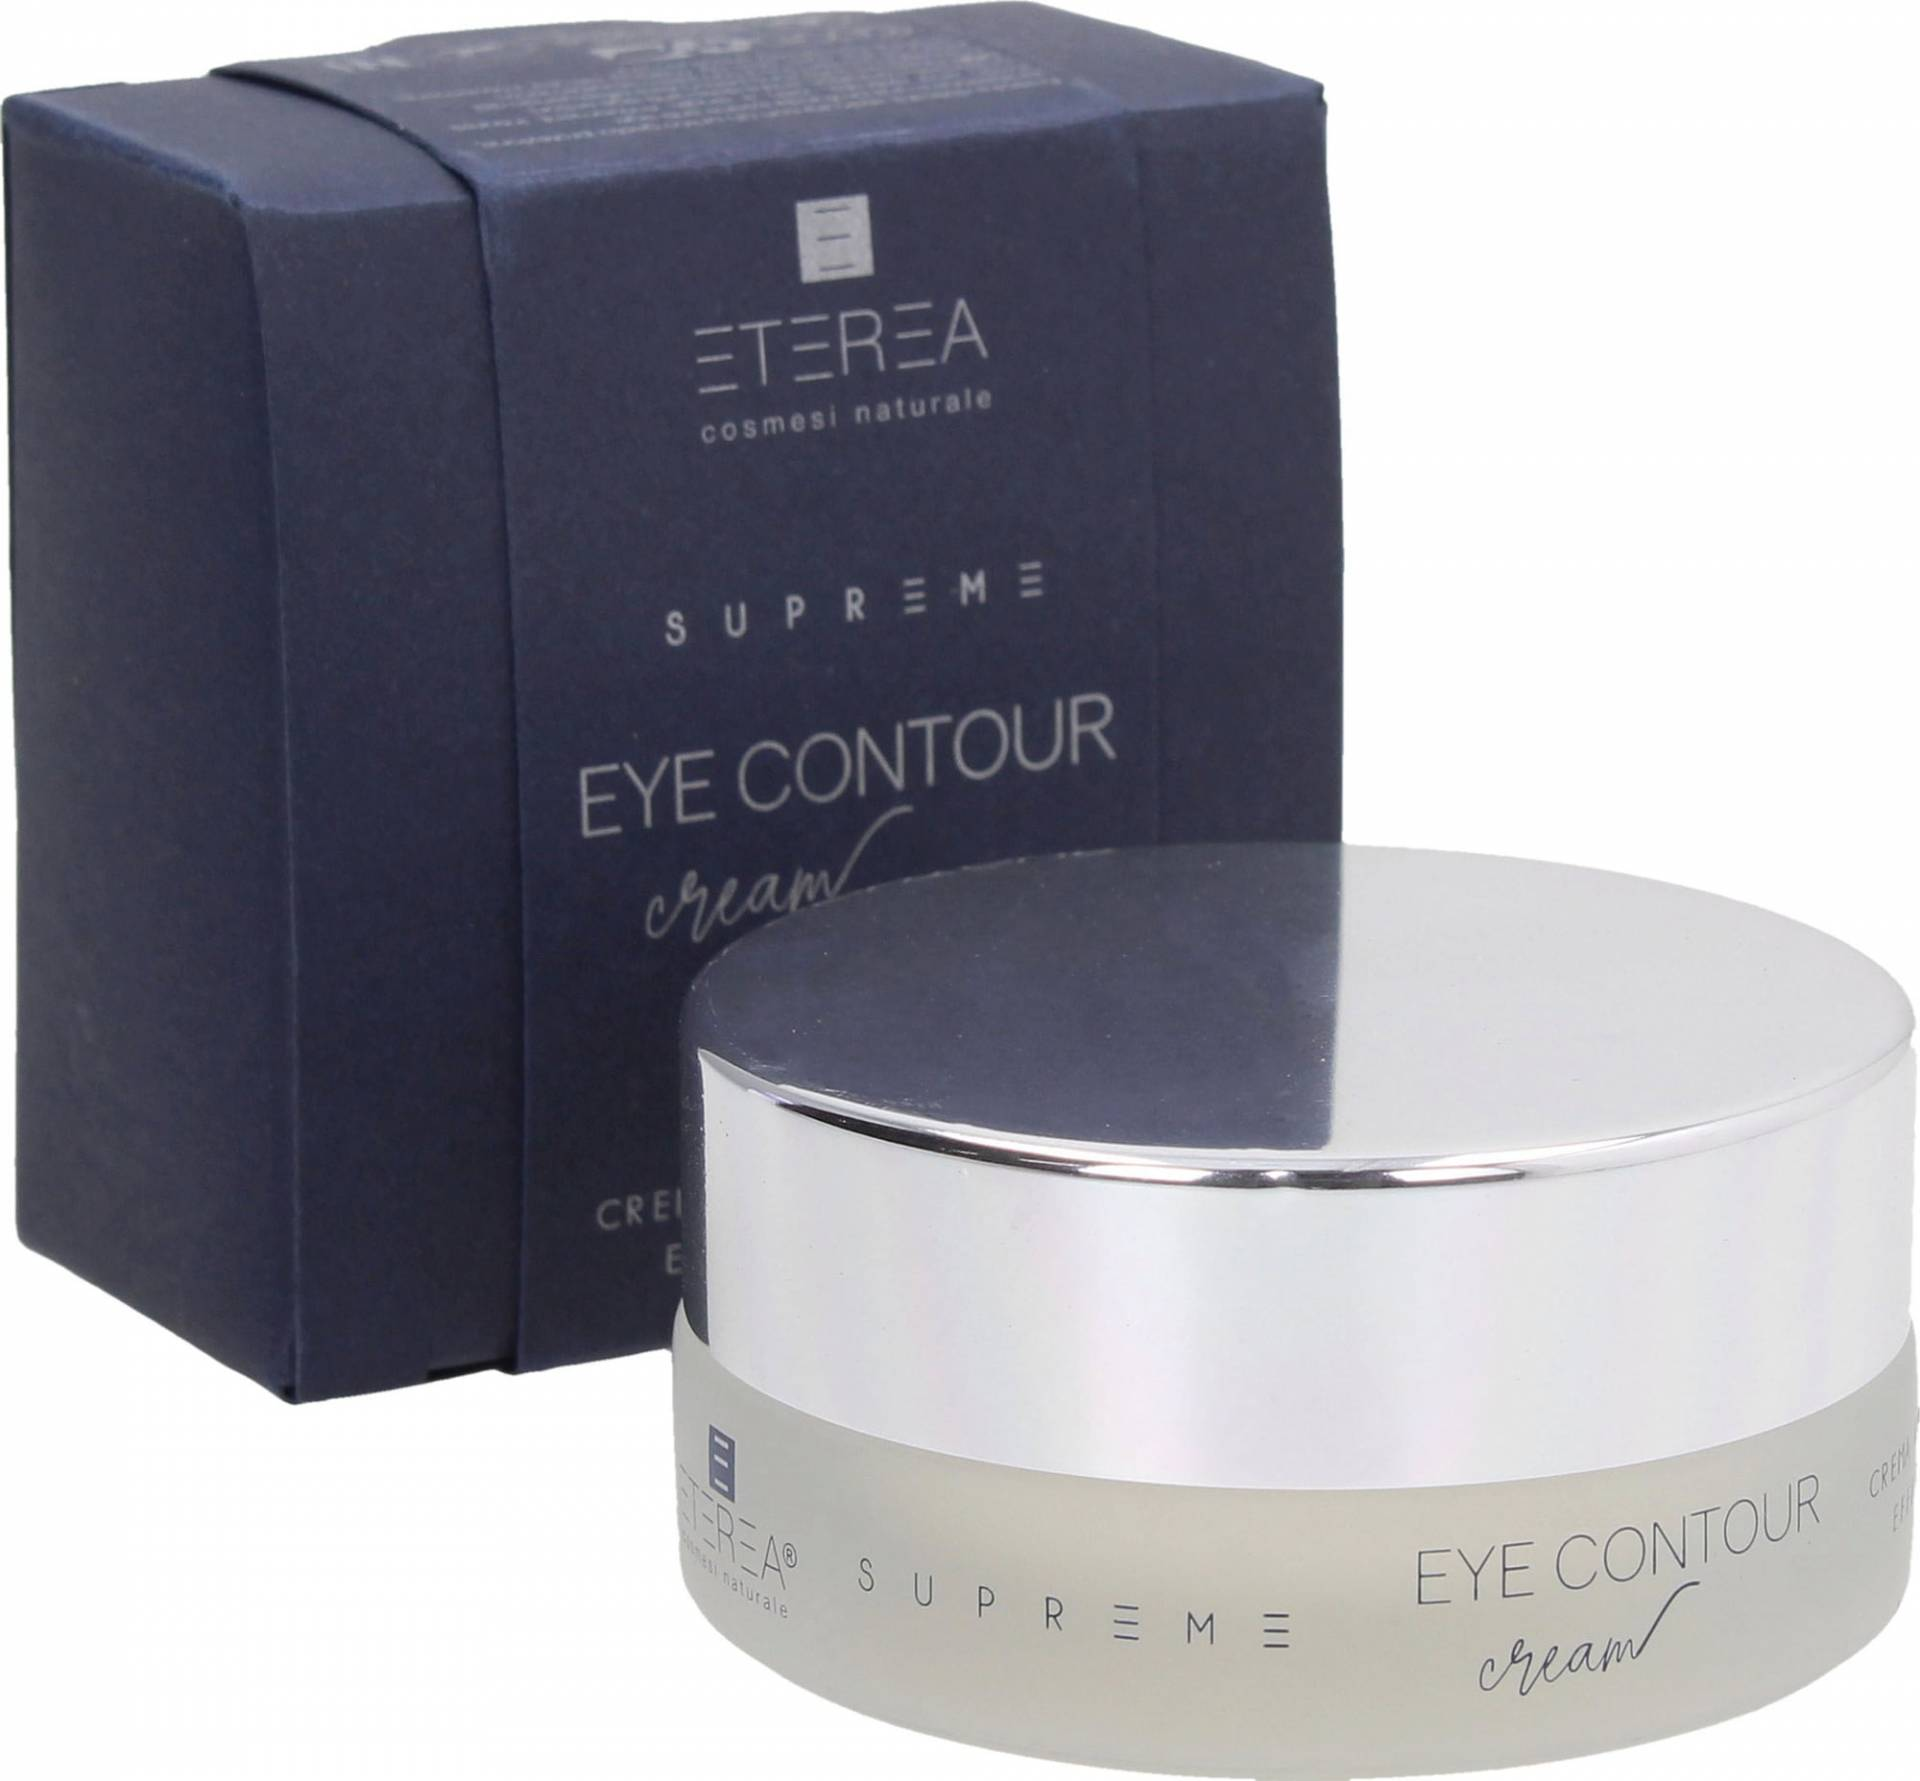 ETEREA Cosmesi Naturale Supreme Eye Contour Cream - 15 ml von ETEREA Cosmesi Naturale